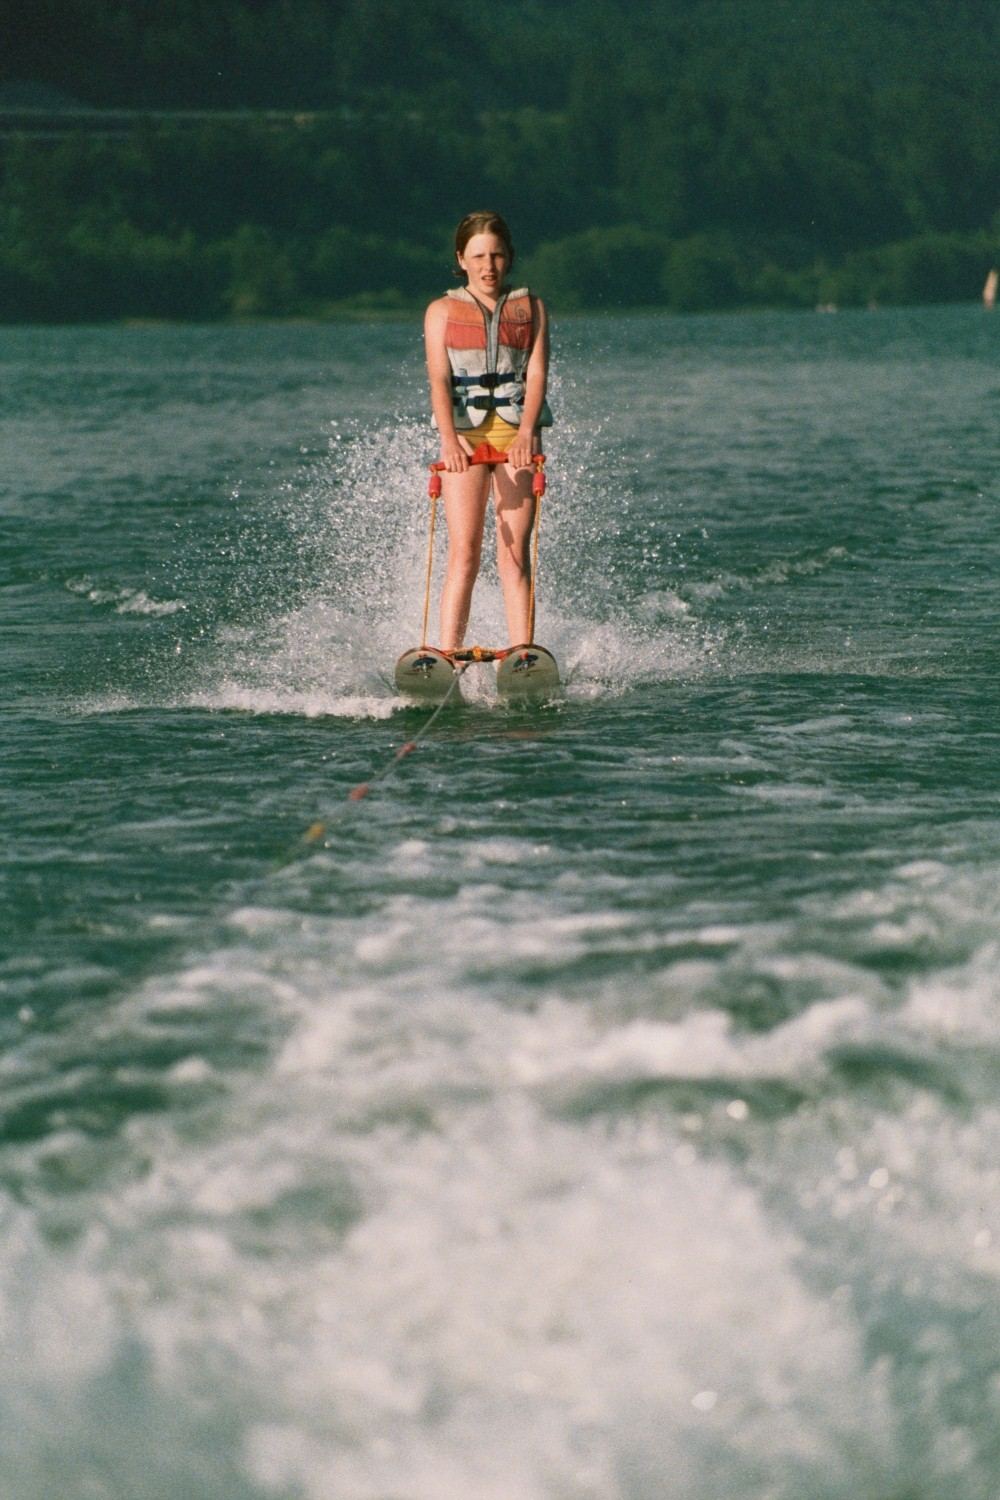 Waterskiing on the Worthersee, Austria